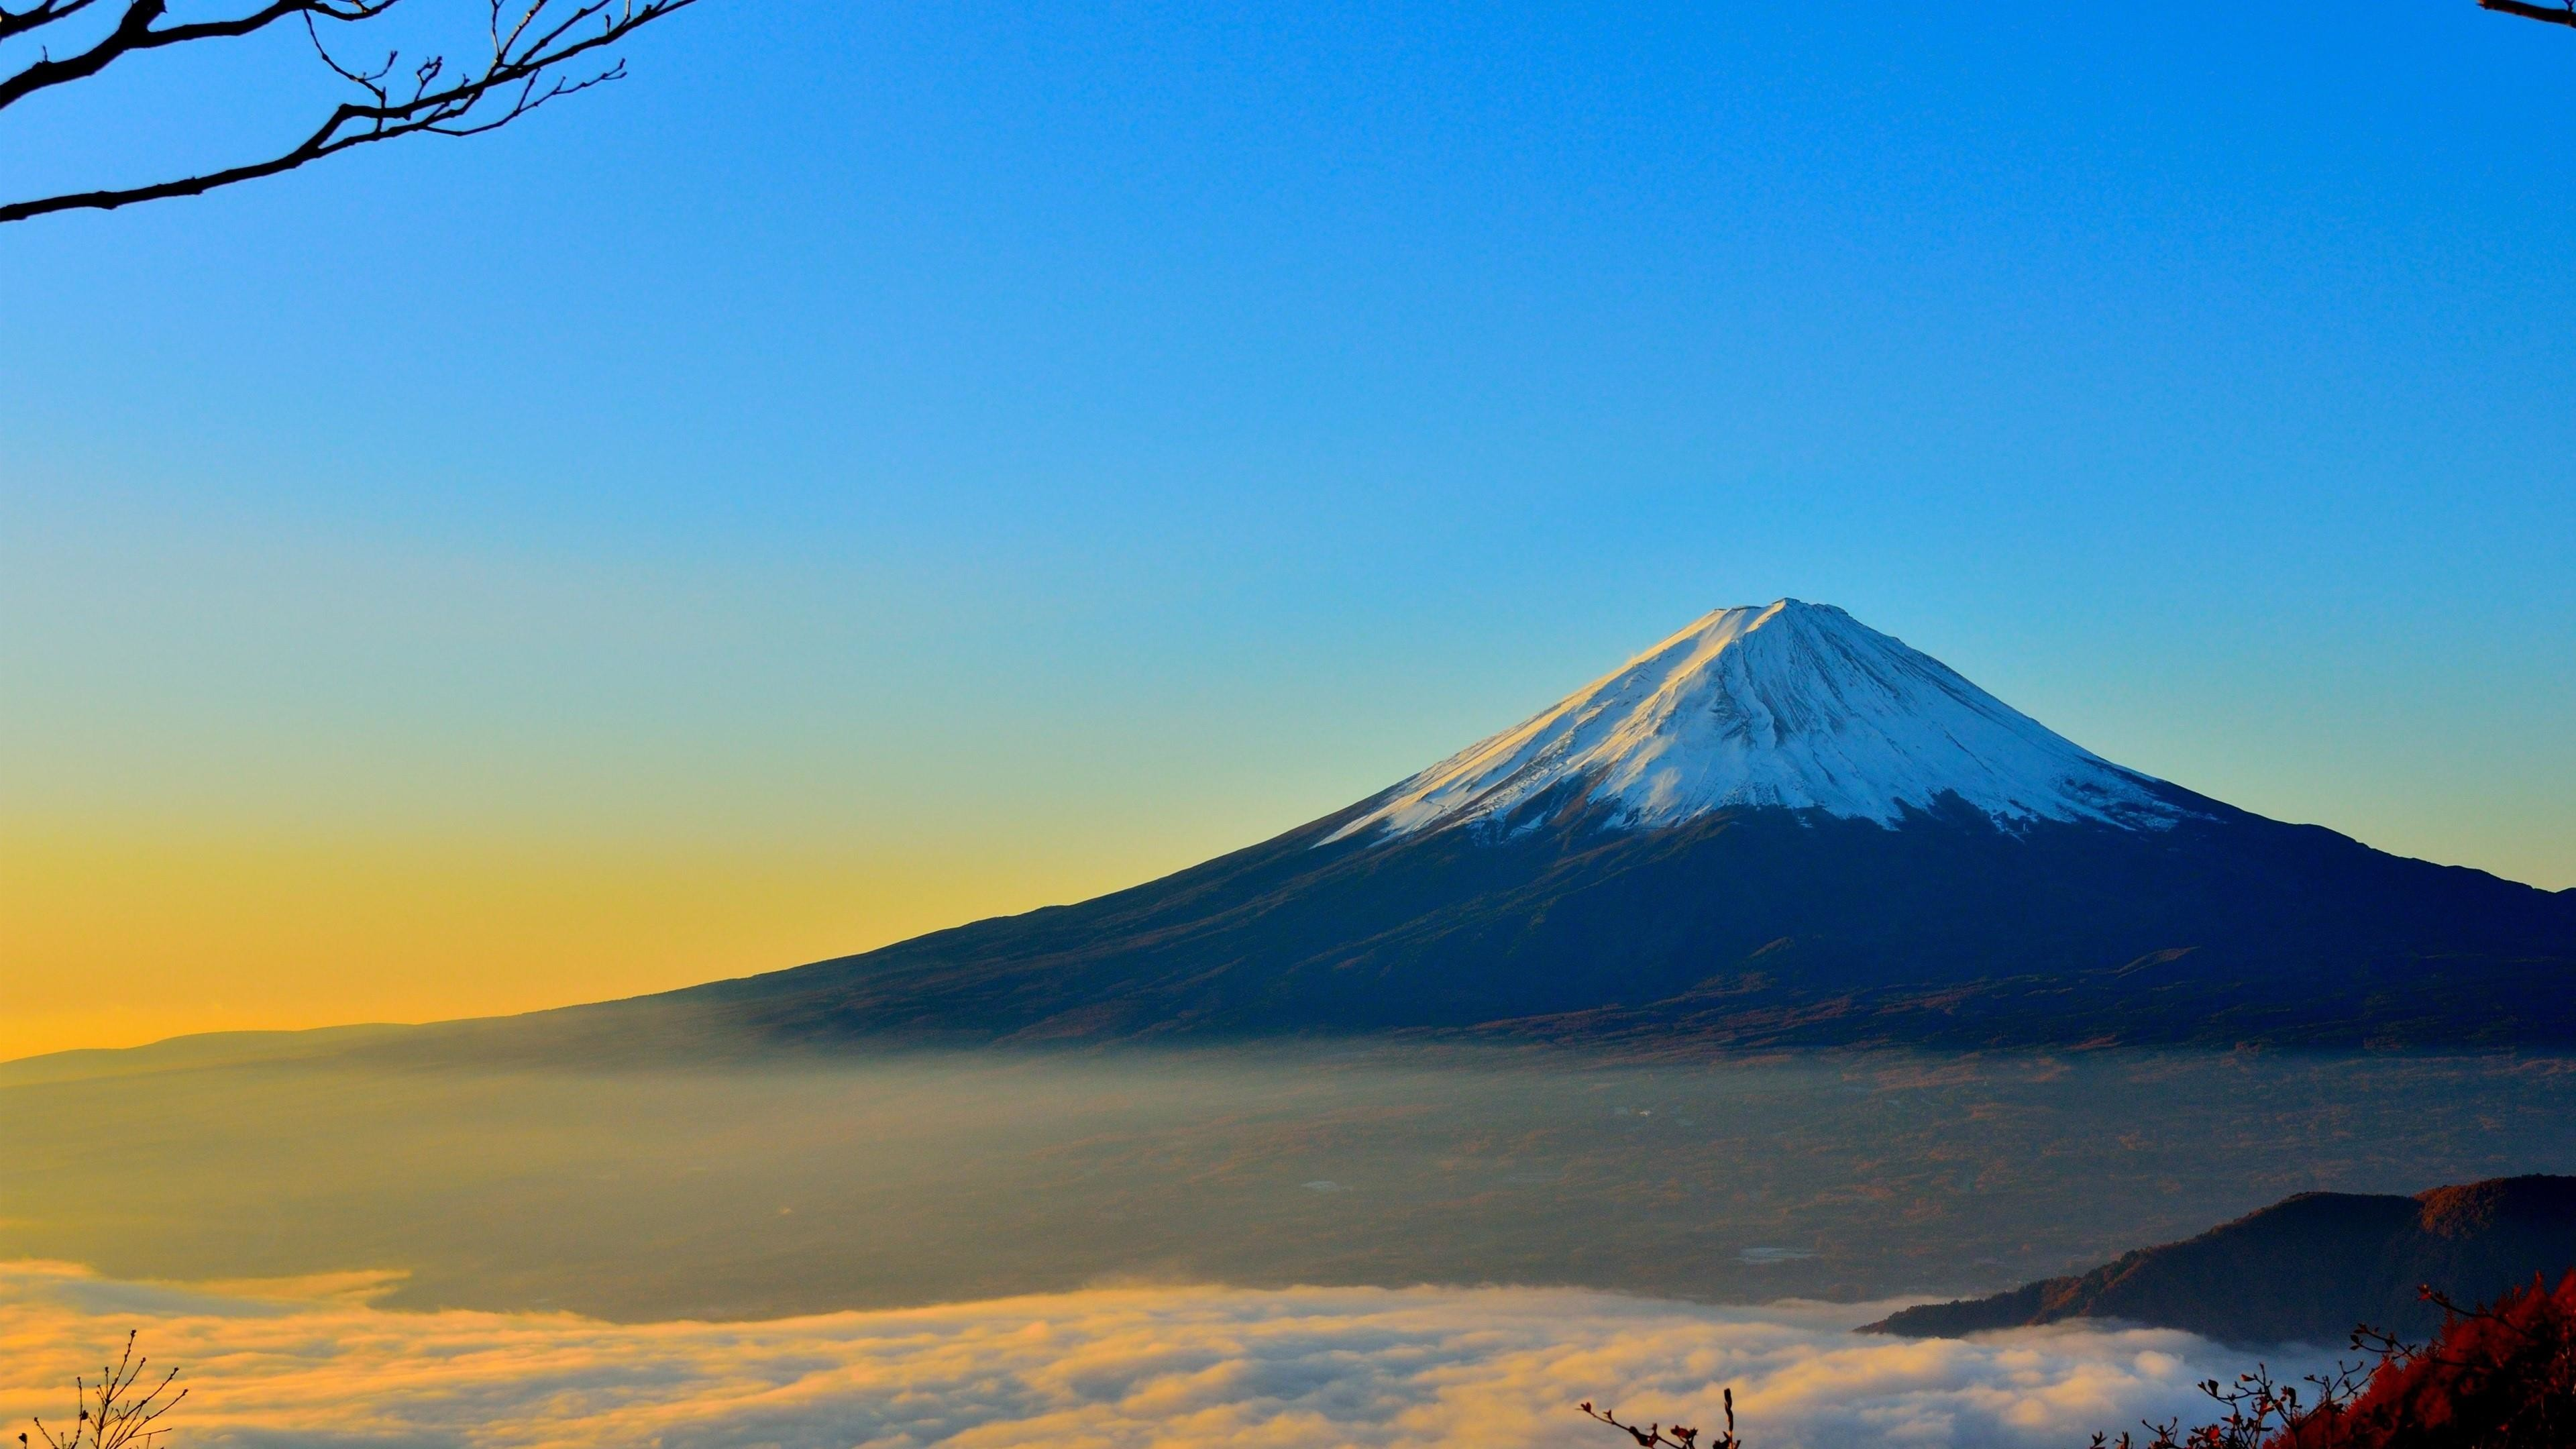 64 Mt Fuji Wallpapers on WallpaperPlay 3840x2160